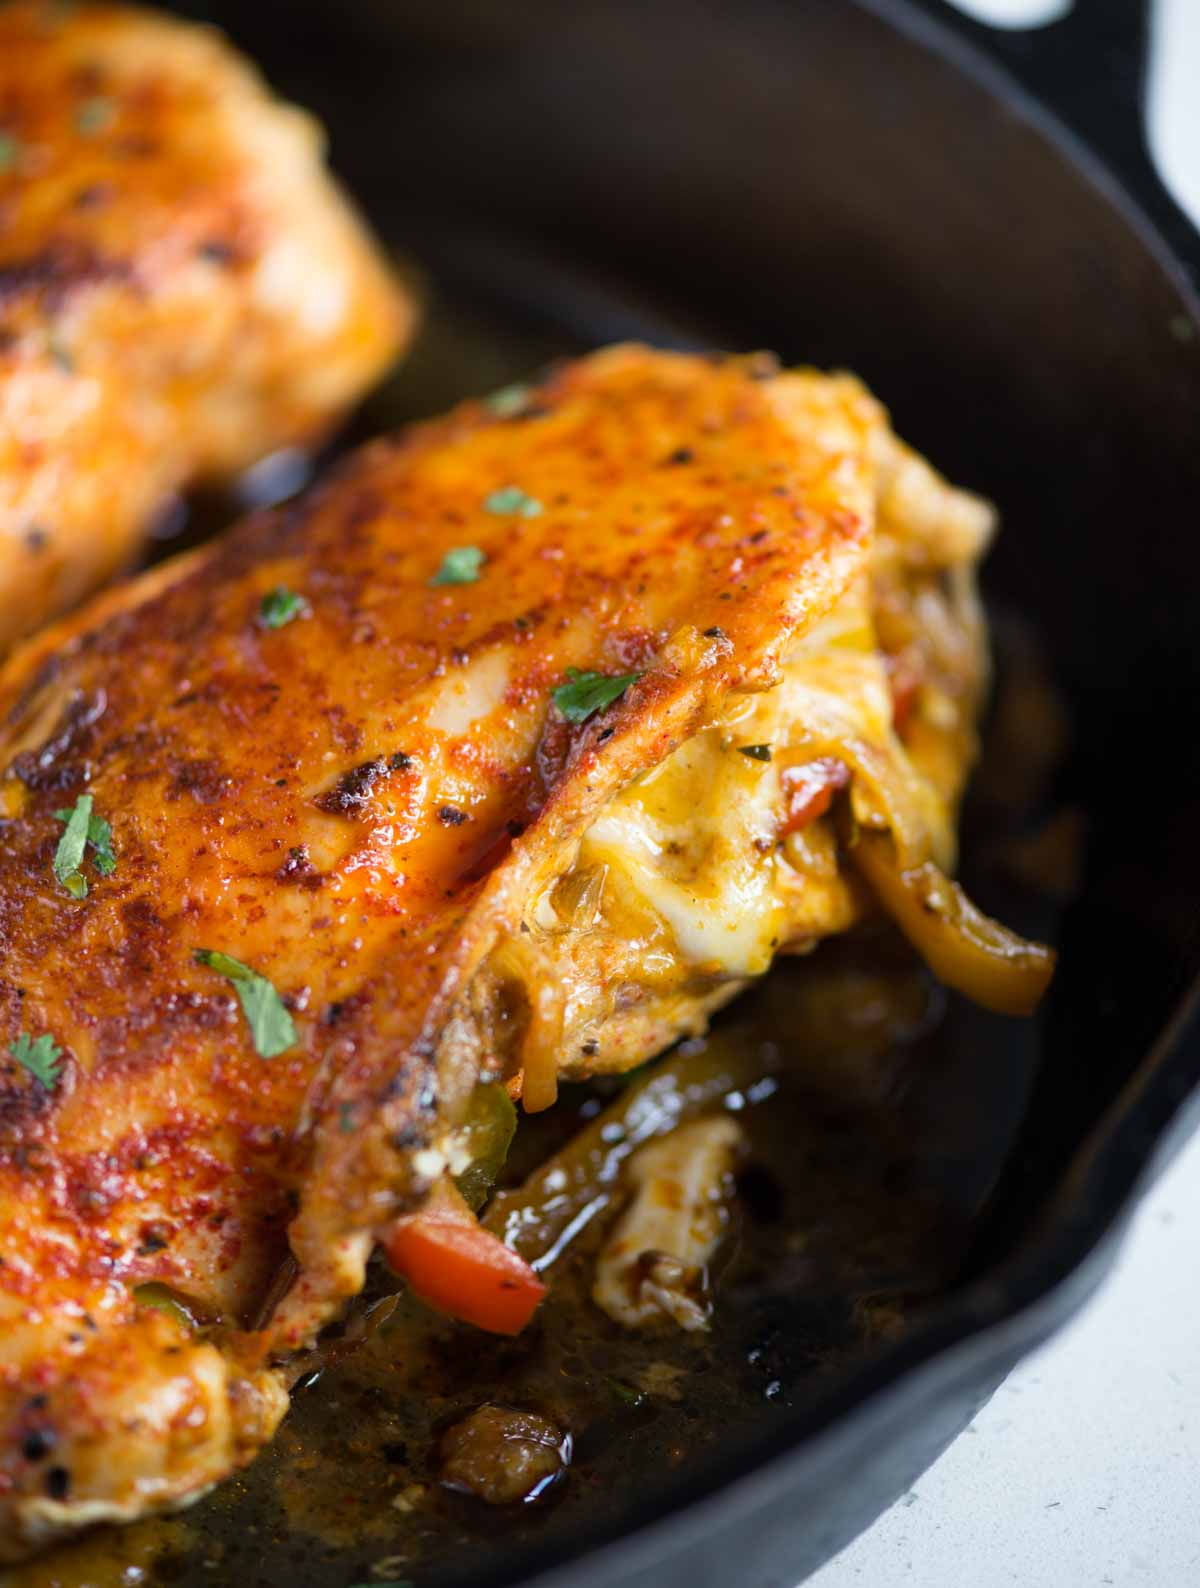 Fajita Stuffed Chicken breast is a different take on Chicken Fajita. Chicken breast is stuffed with Caramelized and crunchy peppers, onion, Mexican seasoning, and cheese, then baked to perfection.